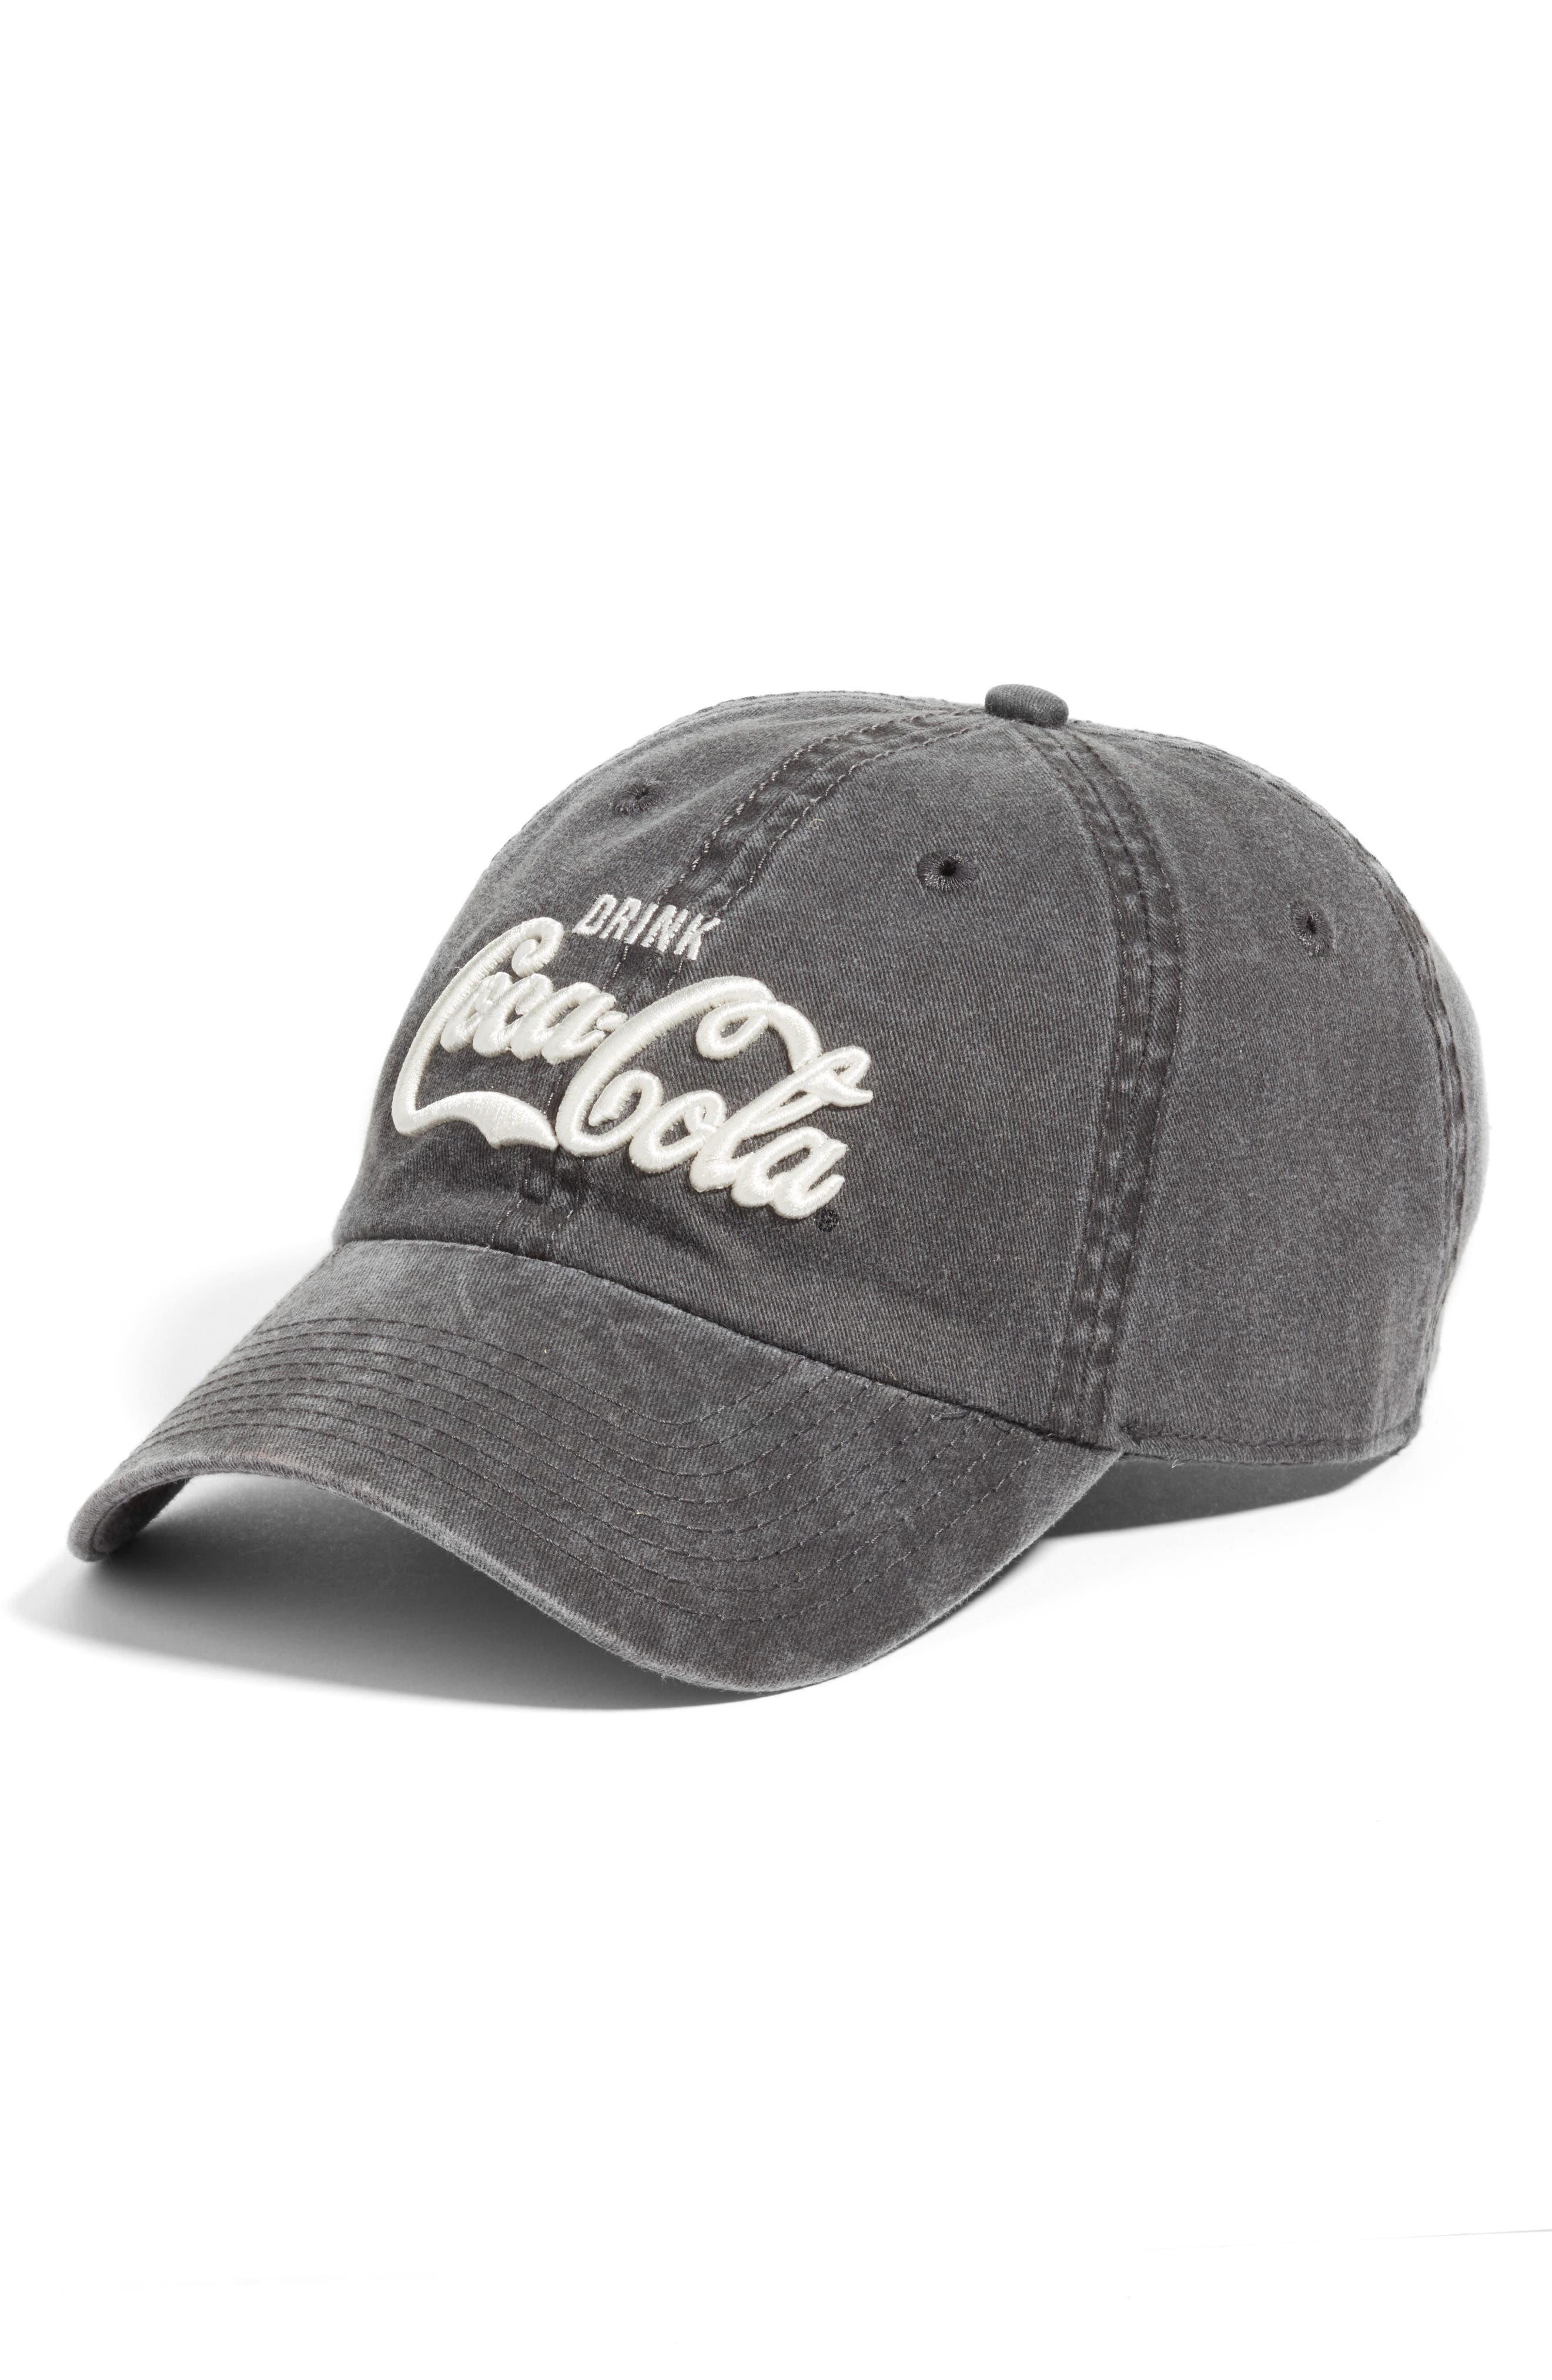 New Raglan - Coca-Cola Baseball Cap,                             Main thumbnail 1, color,